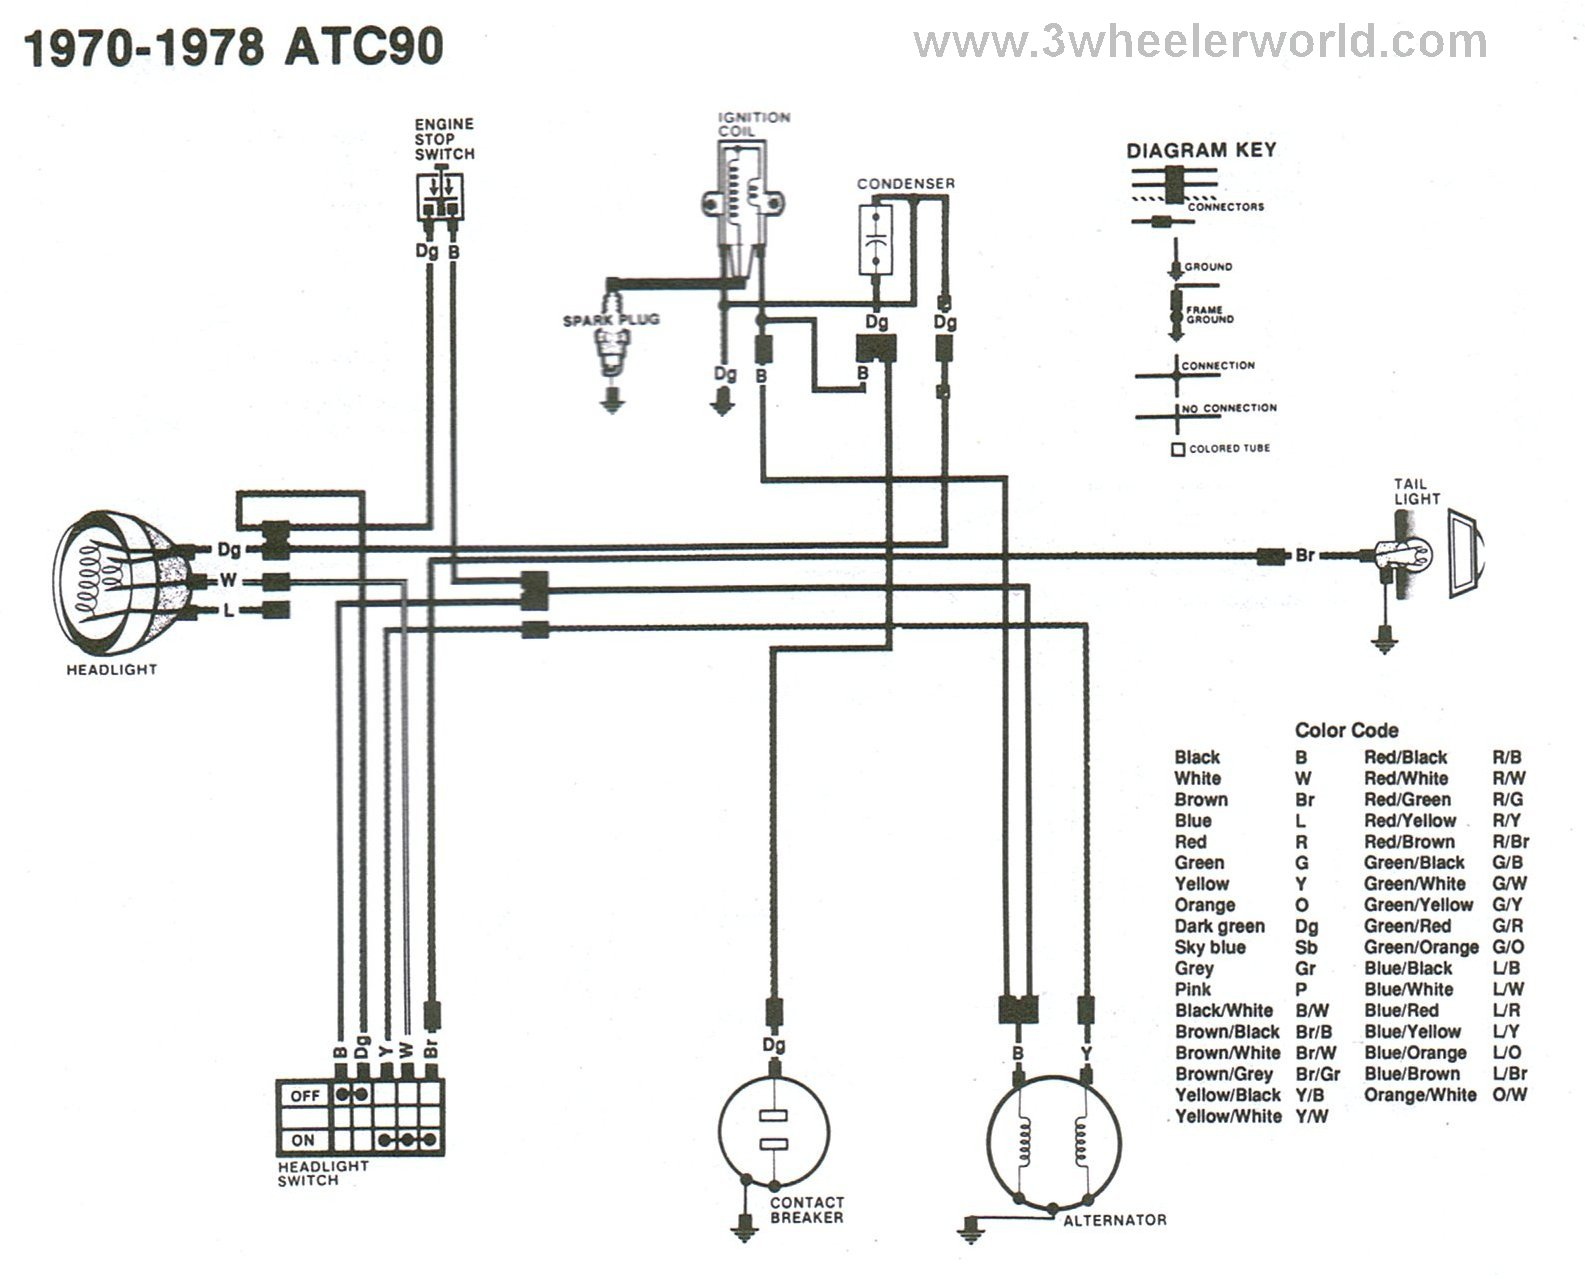 3 Wheeler World Tech Help Honda Wiring Diagrams 1973 Shovelhead Diagram Us90 1970 Thru Atc90 1974 1978